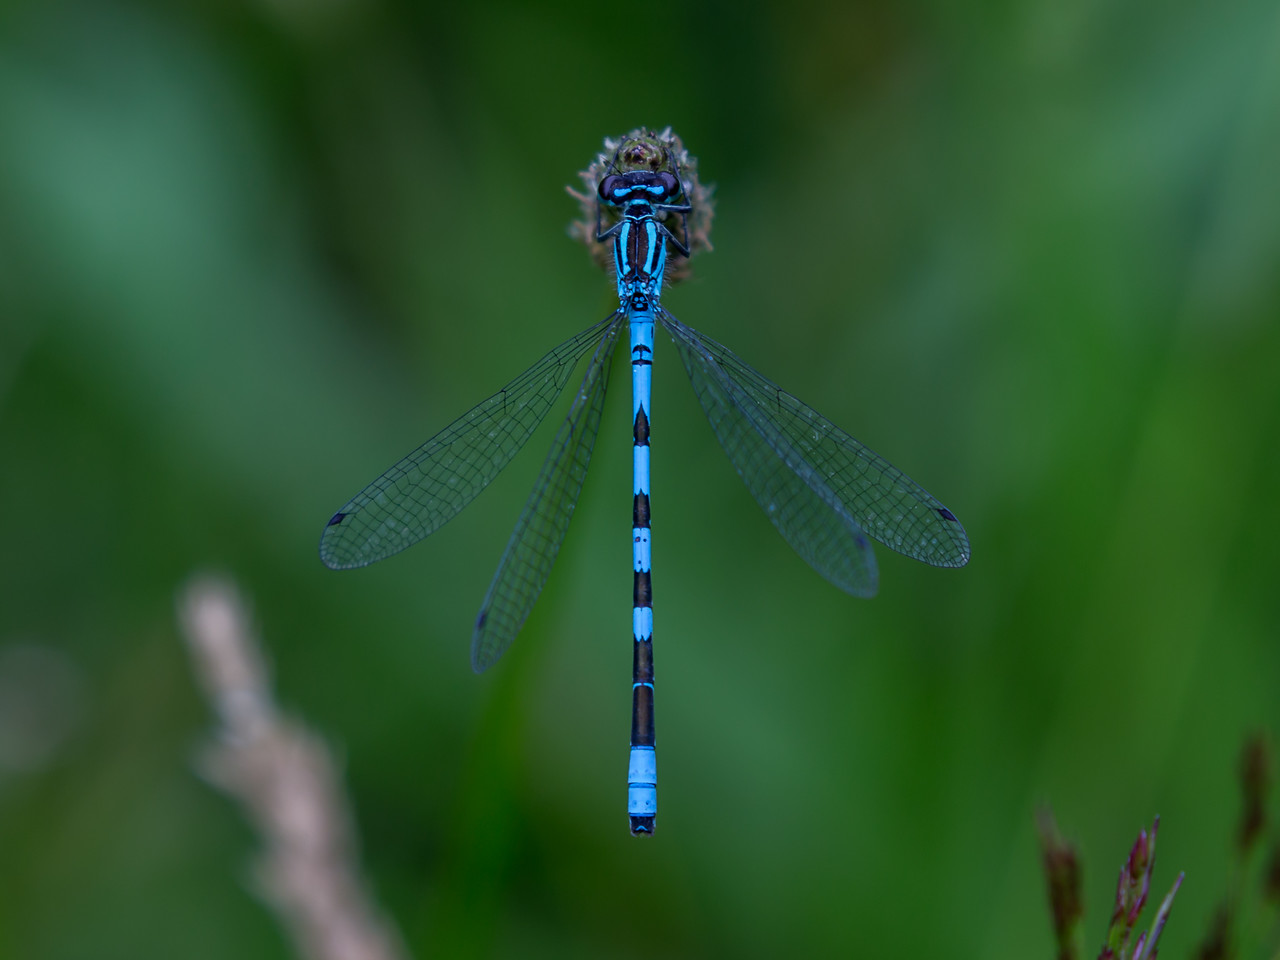 Coenagrion Hastulatum, Spydvandnymfe, Spearhead Bluet, male.